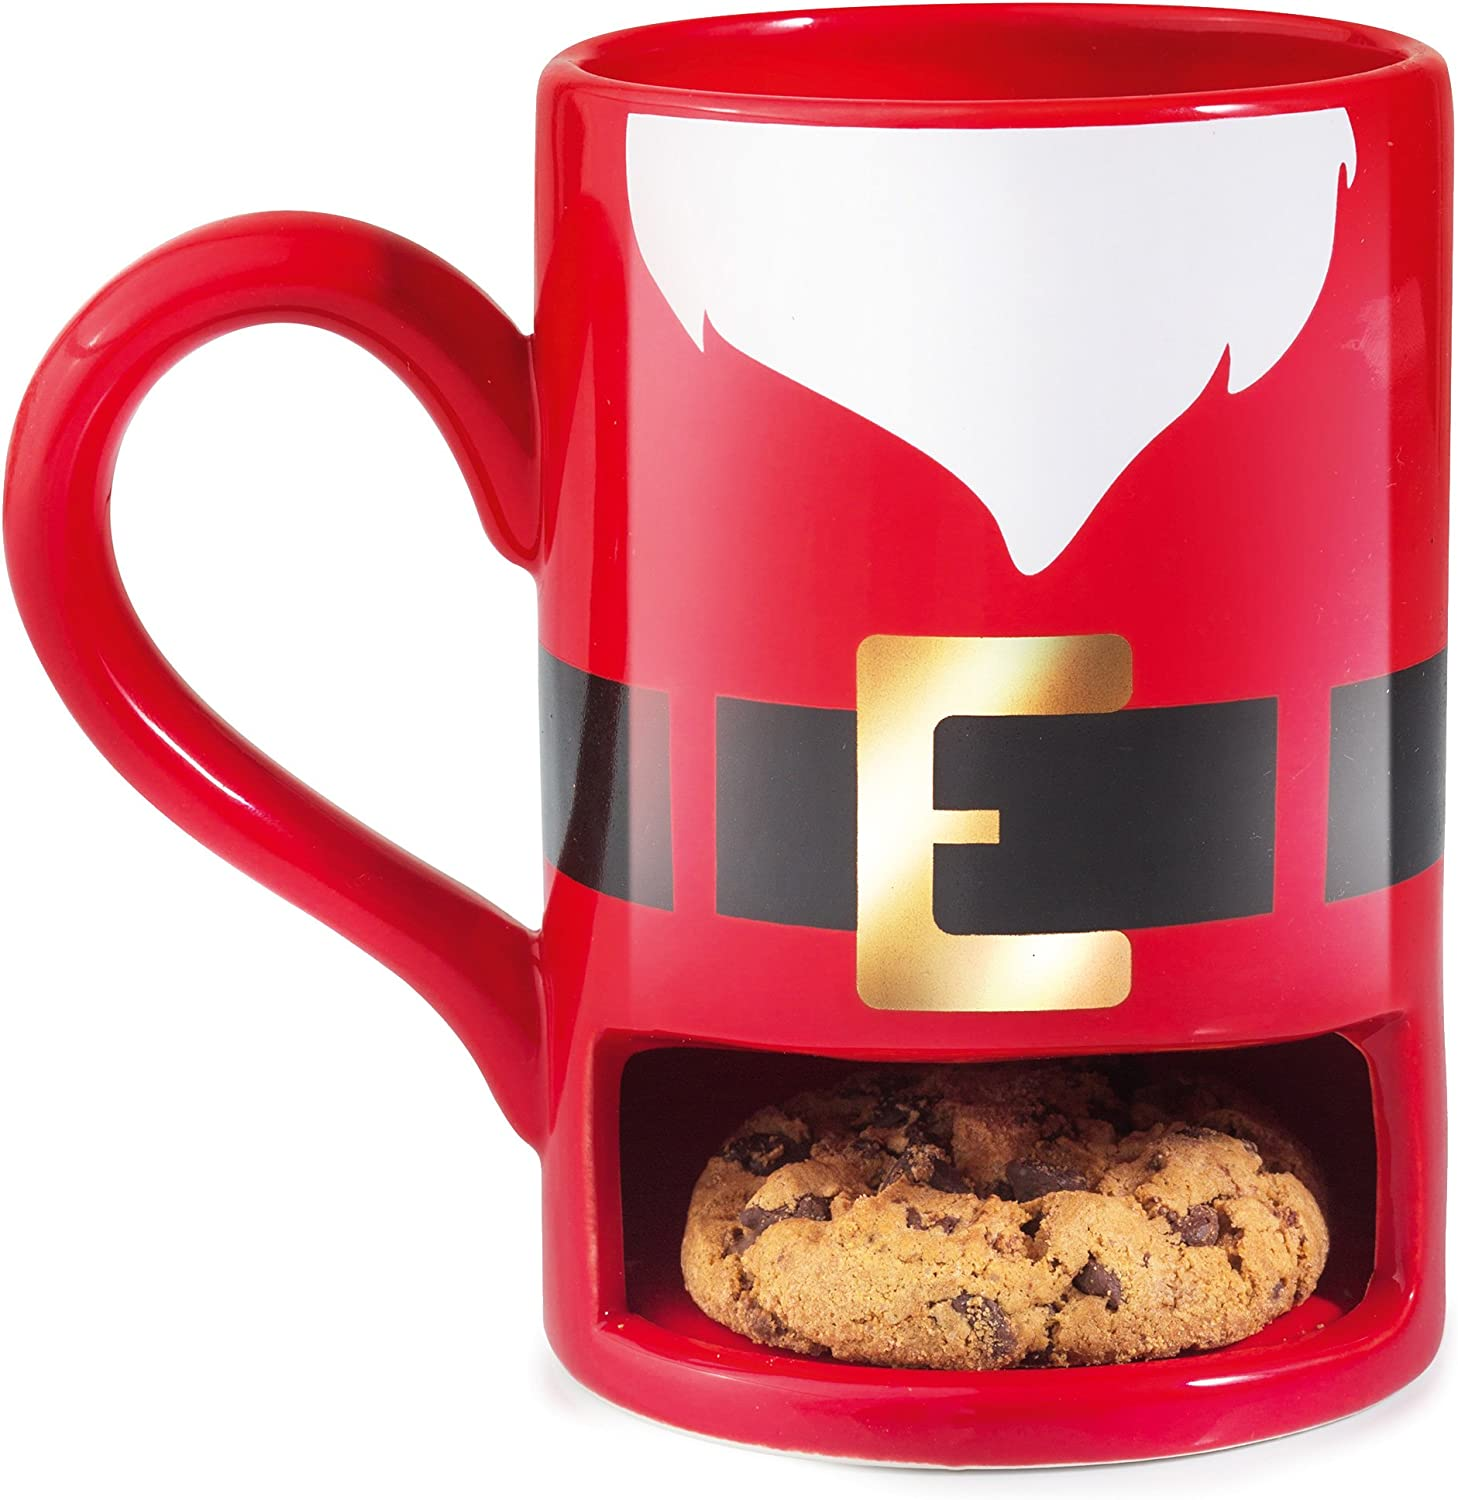 Donkey Products 210330 Holy Mug Biscuit Mug, Biscuit